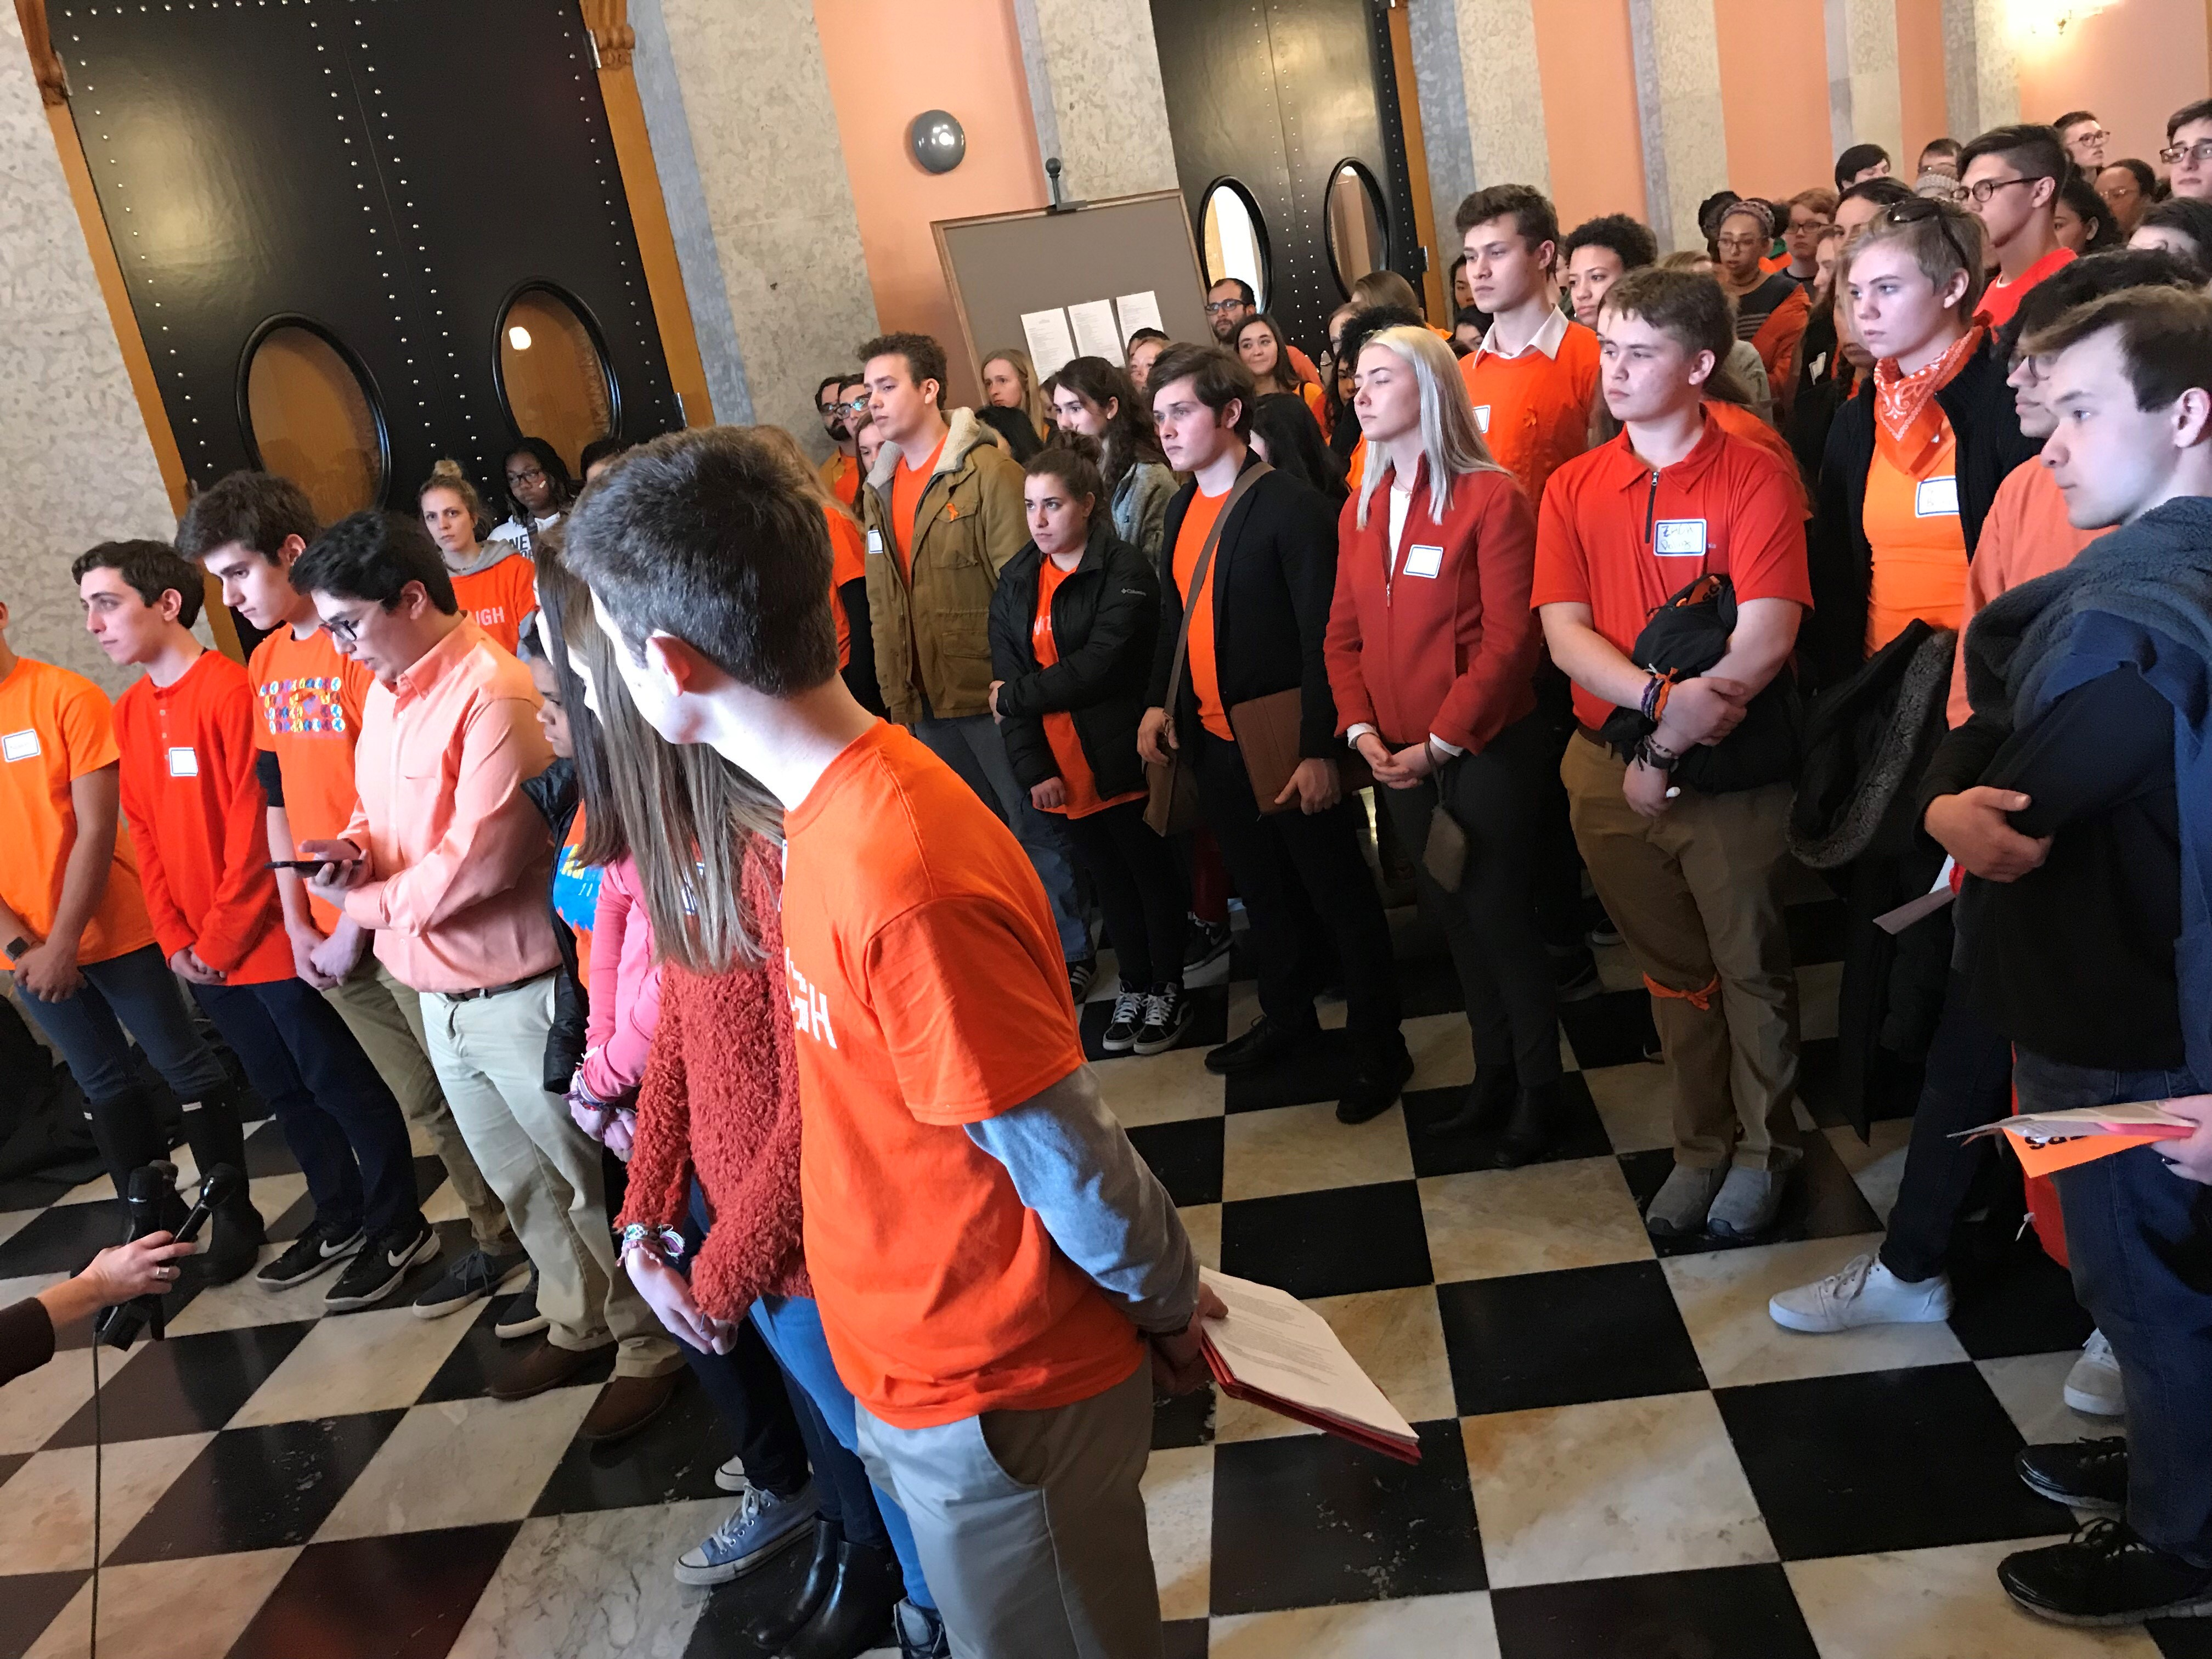 Ohio students, wearing orange for gun violence, speak to press and onlookers at the Columbus Statehouse